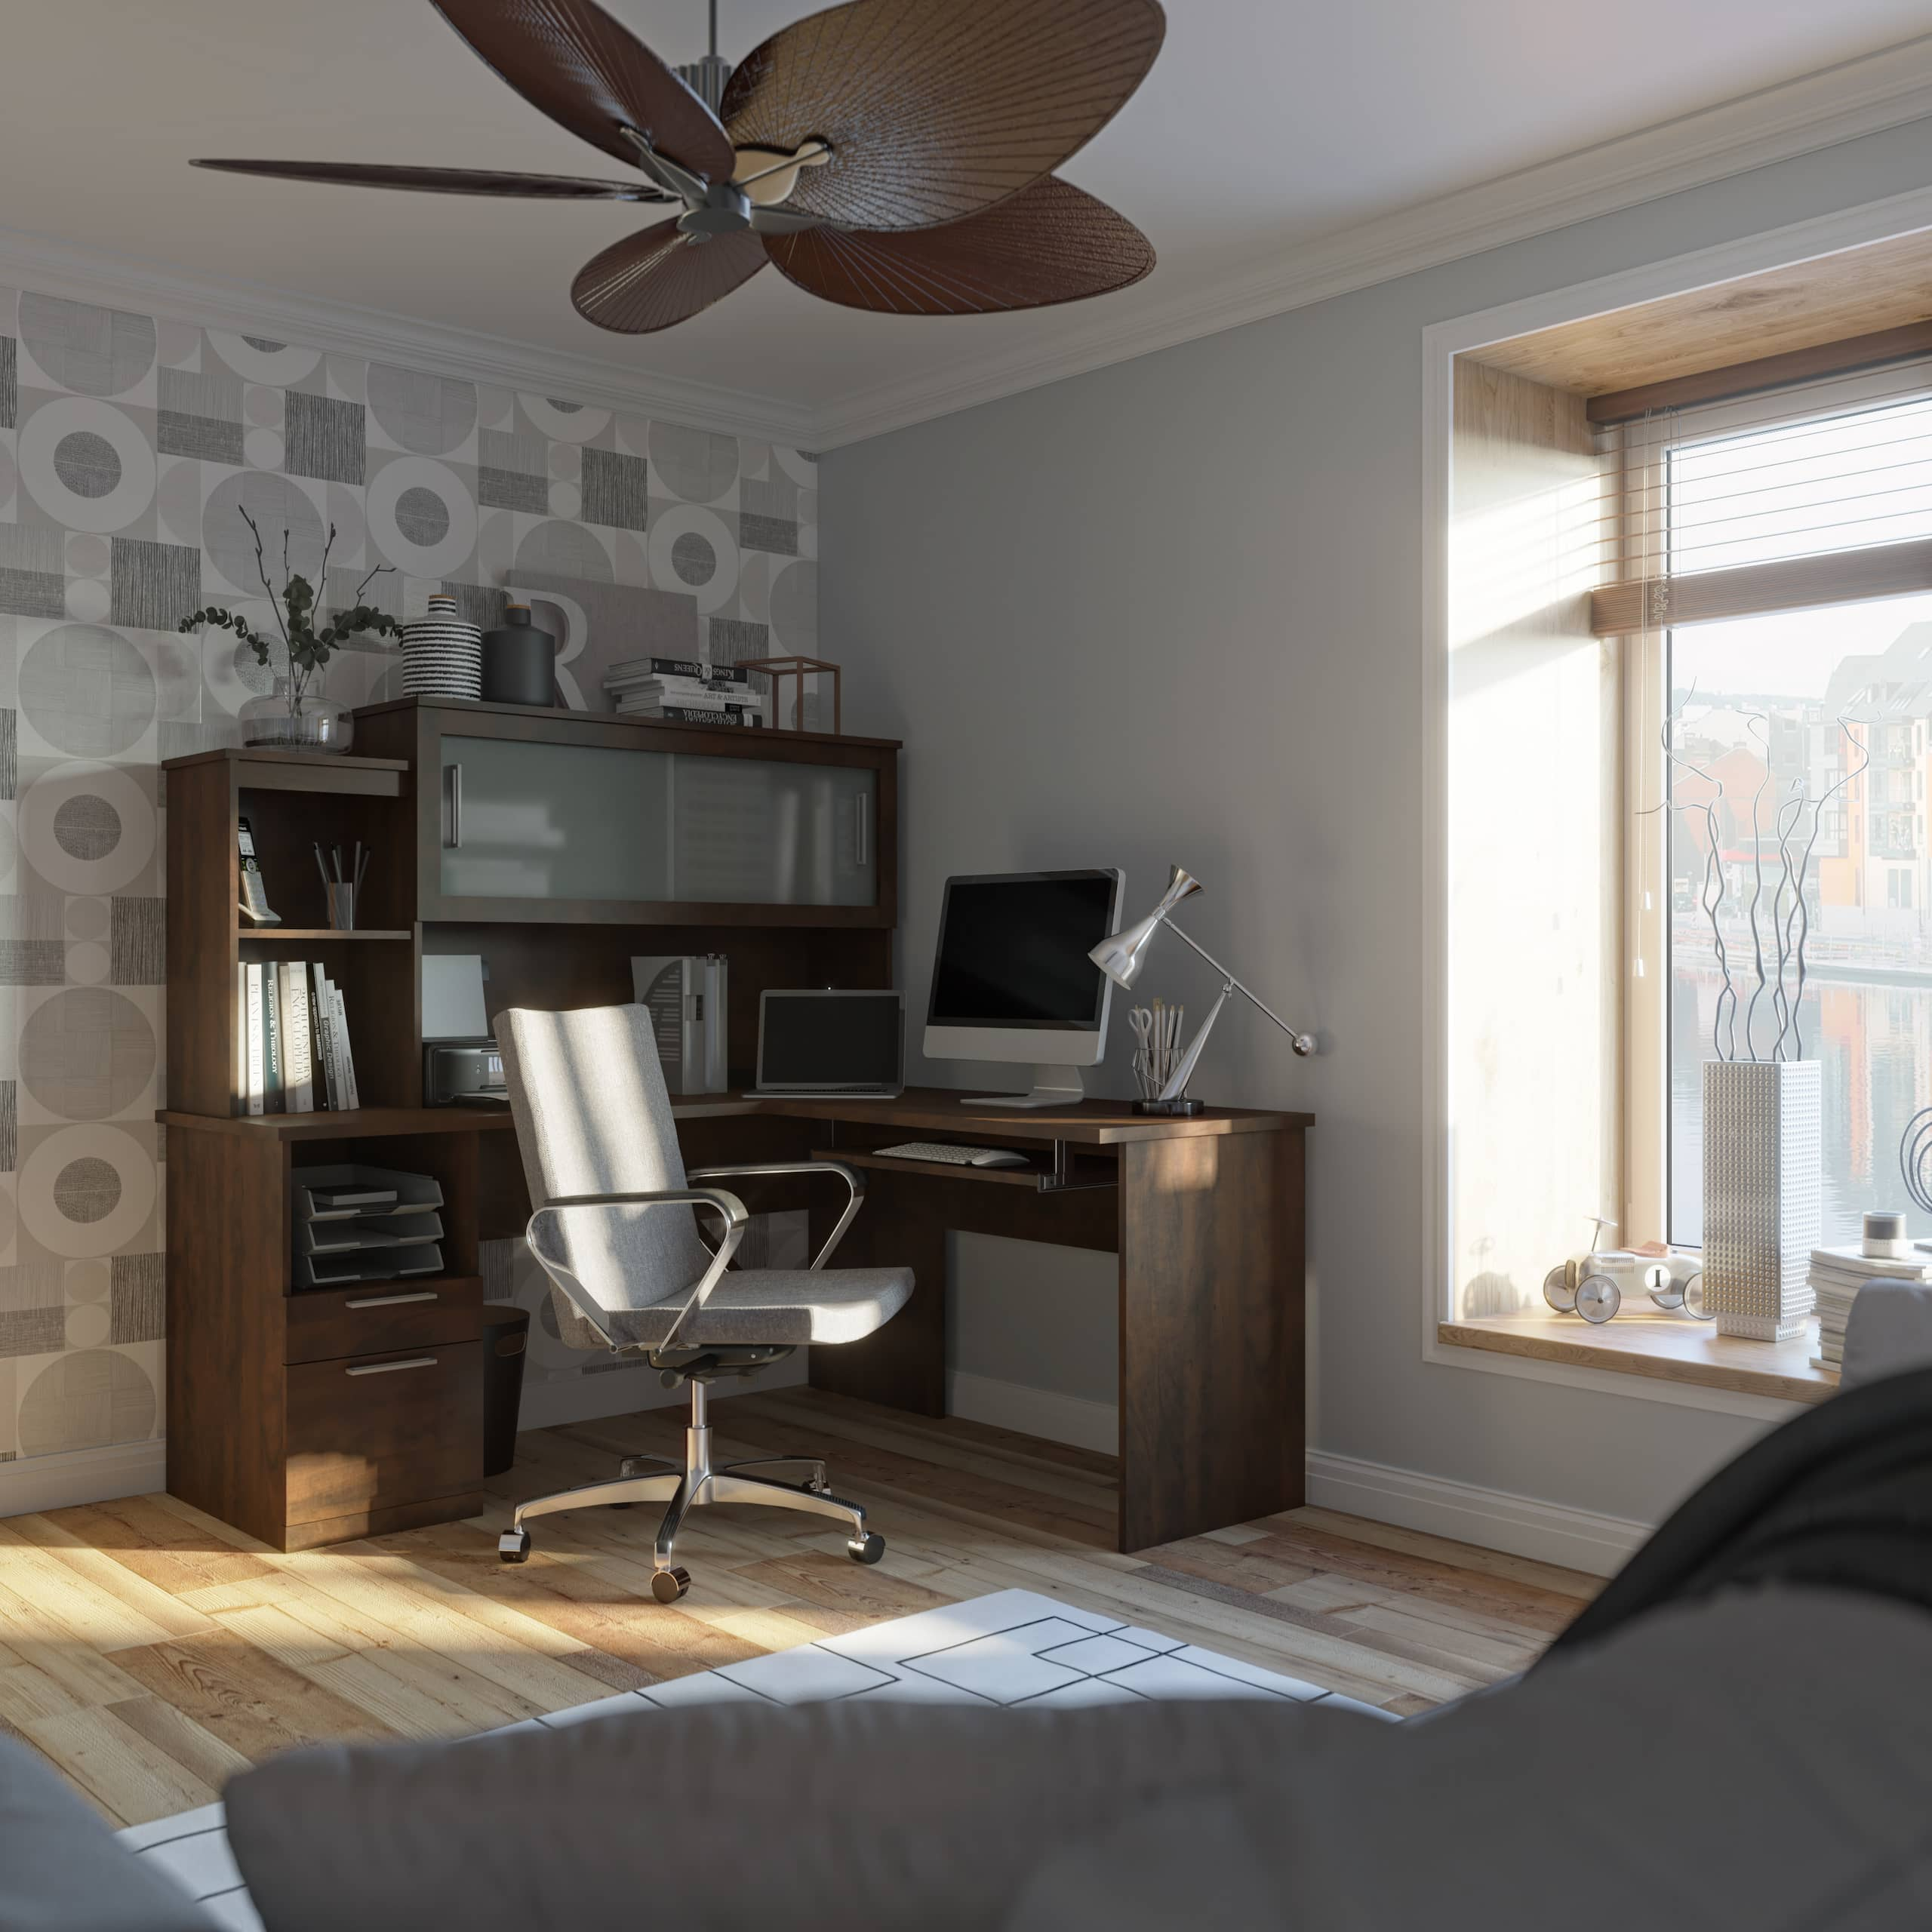 5 Innovative Home Office Ideas for Creatives – Start With an L Shaped Desk